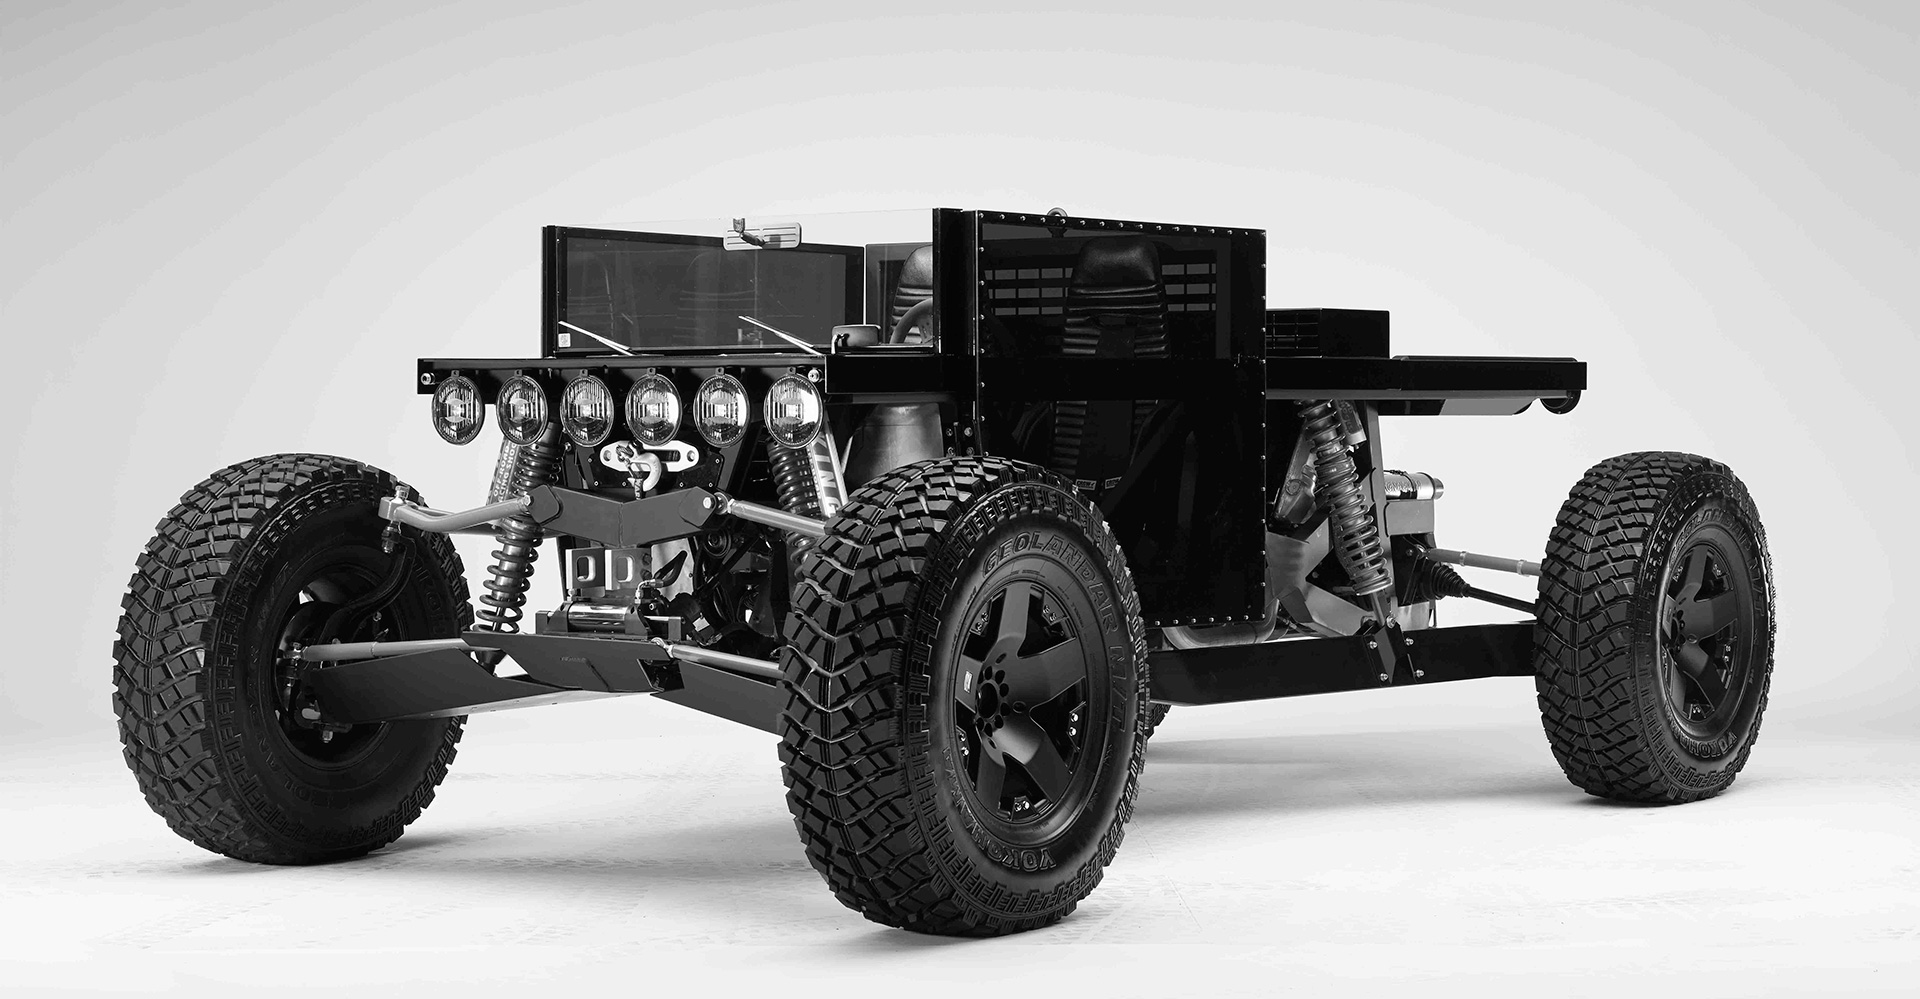 Reboot Buggy by Ruiter excludes non essential amenities from an automobile and is built from common salvage yard parts | Disruptors| Rem D Koolhaas and Joey Ruiter | Petersen Automotive Museum | STIRworld